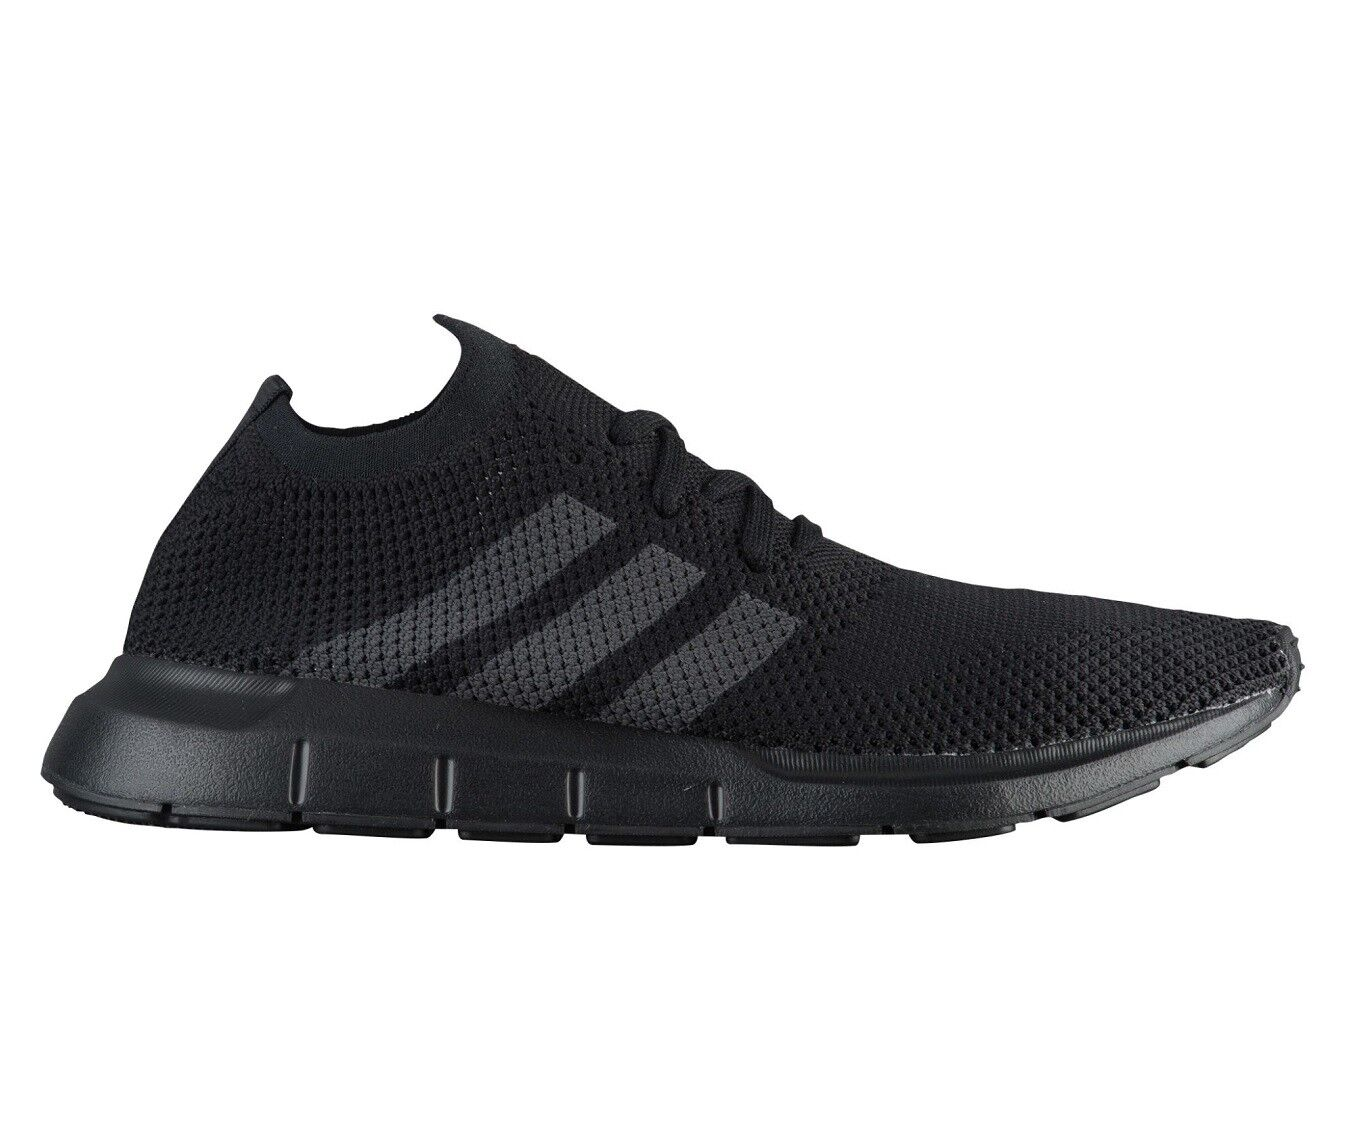 Adidas Swift Run PK Mens CQ2893 Black Grey Primeknit Running Shoes Size 9.5